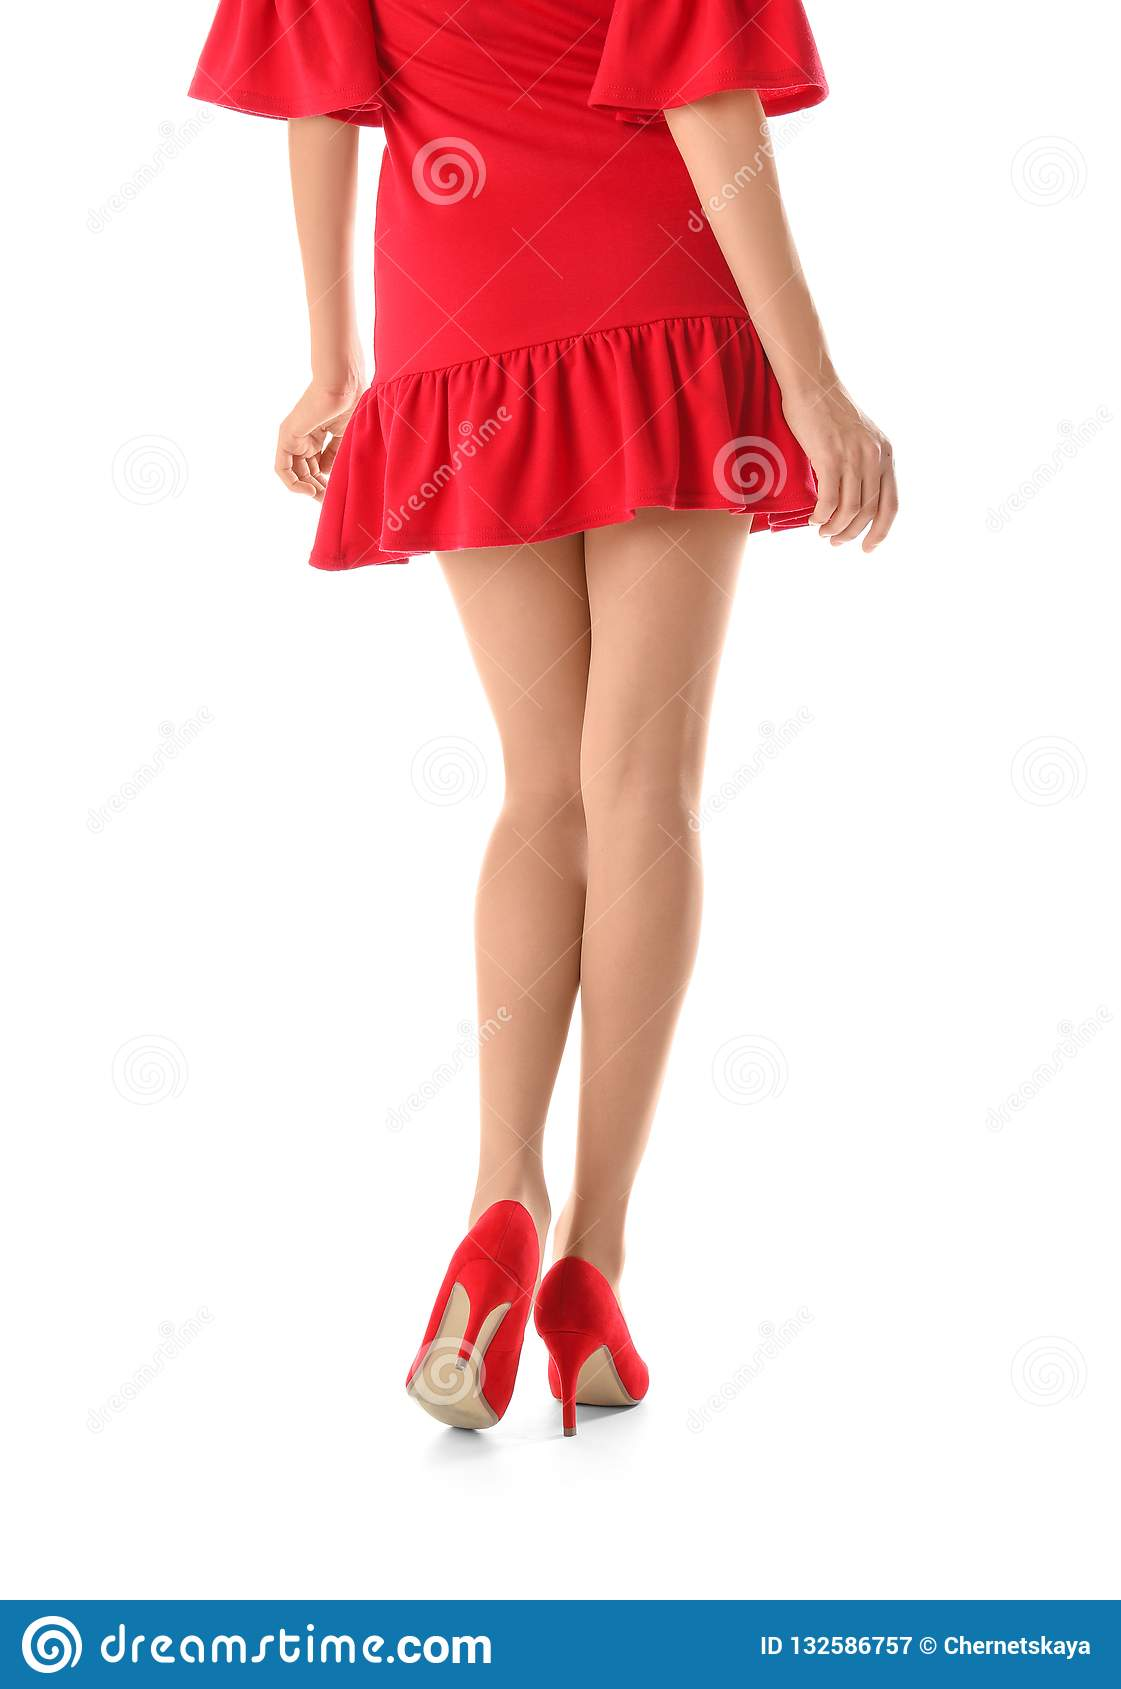 Young woman with beautiful long legs in stylish outfit